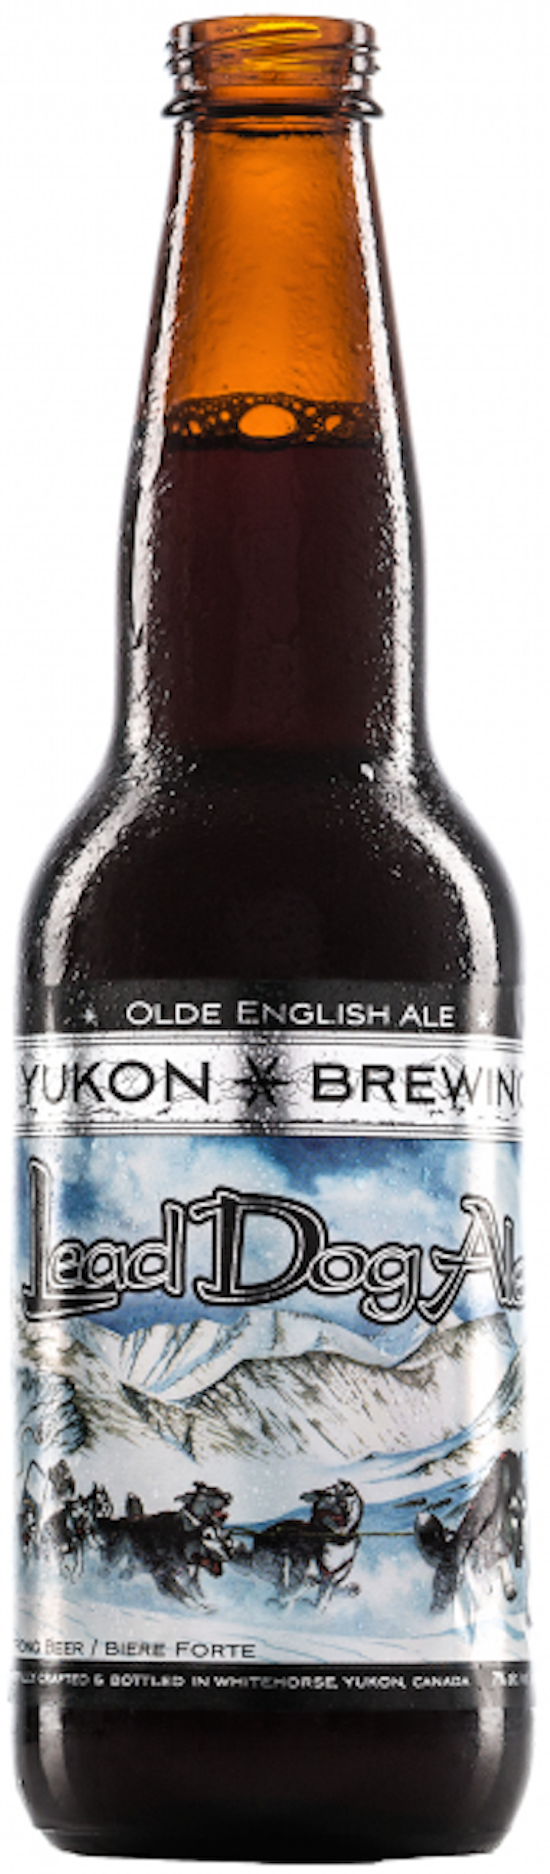 yukon-brewing-lead-dog-ale_1480025591